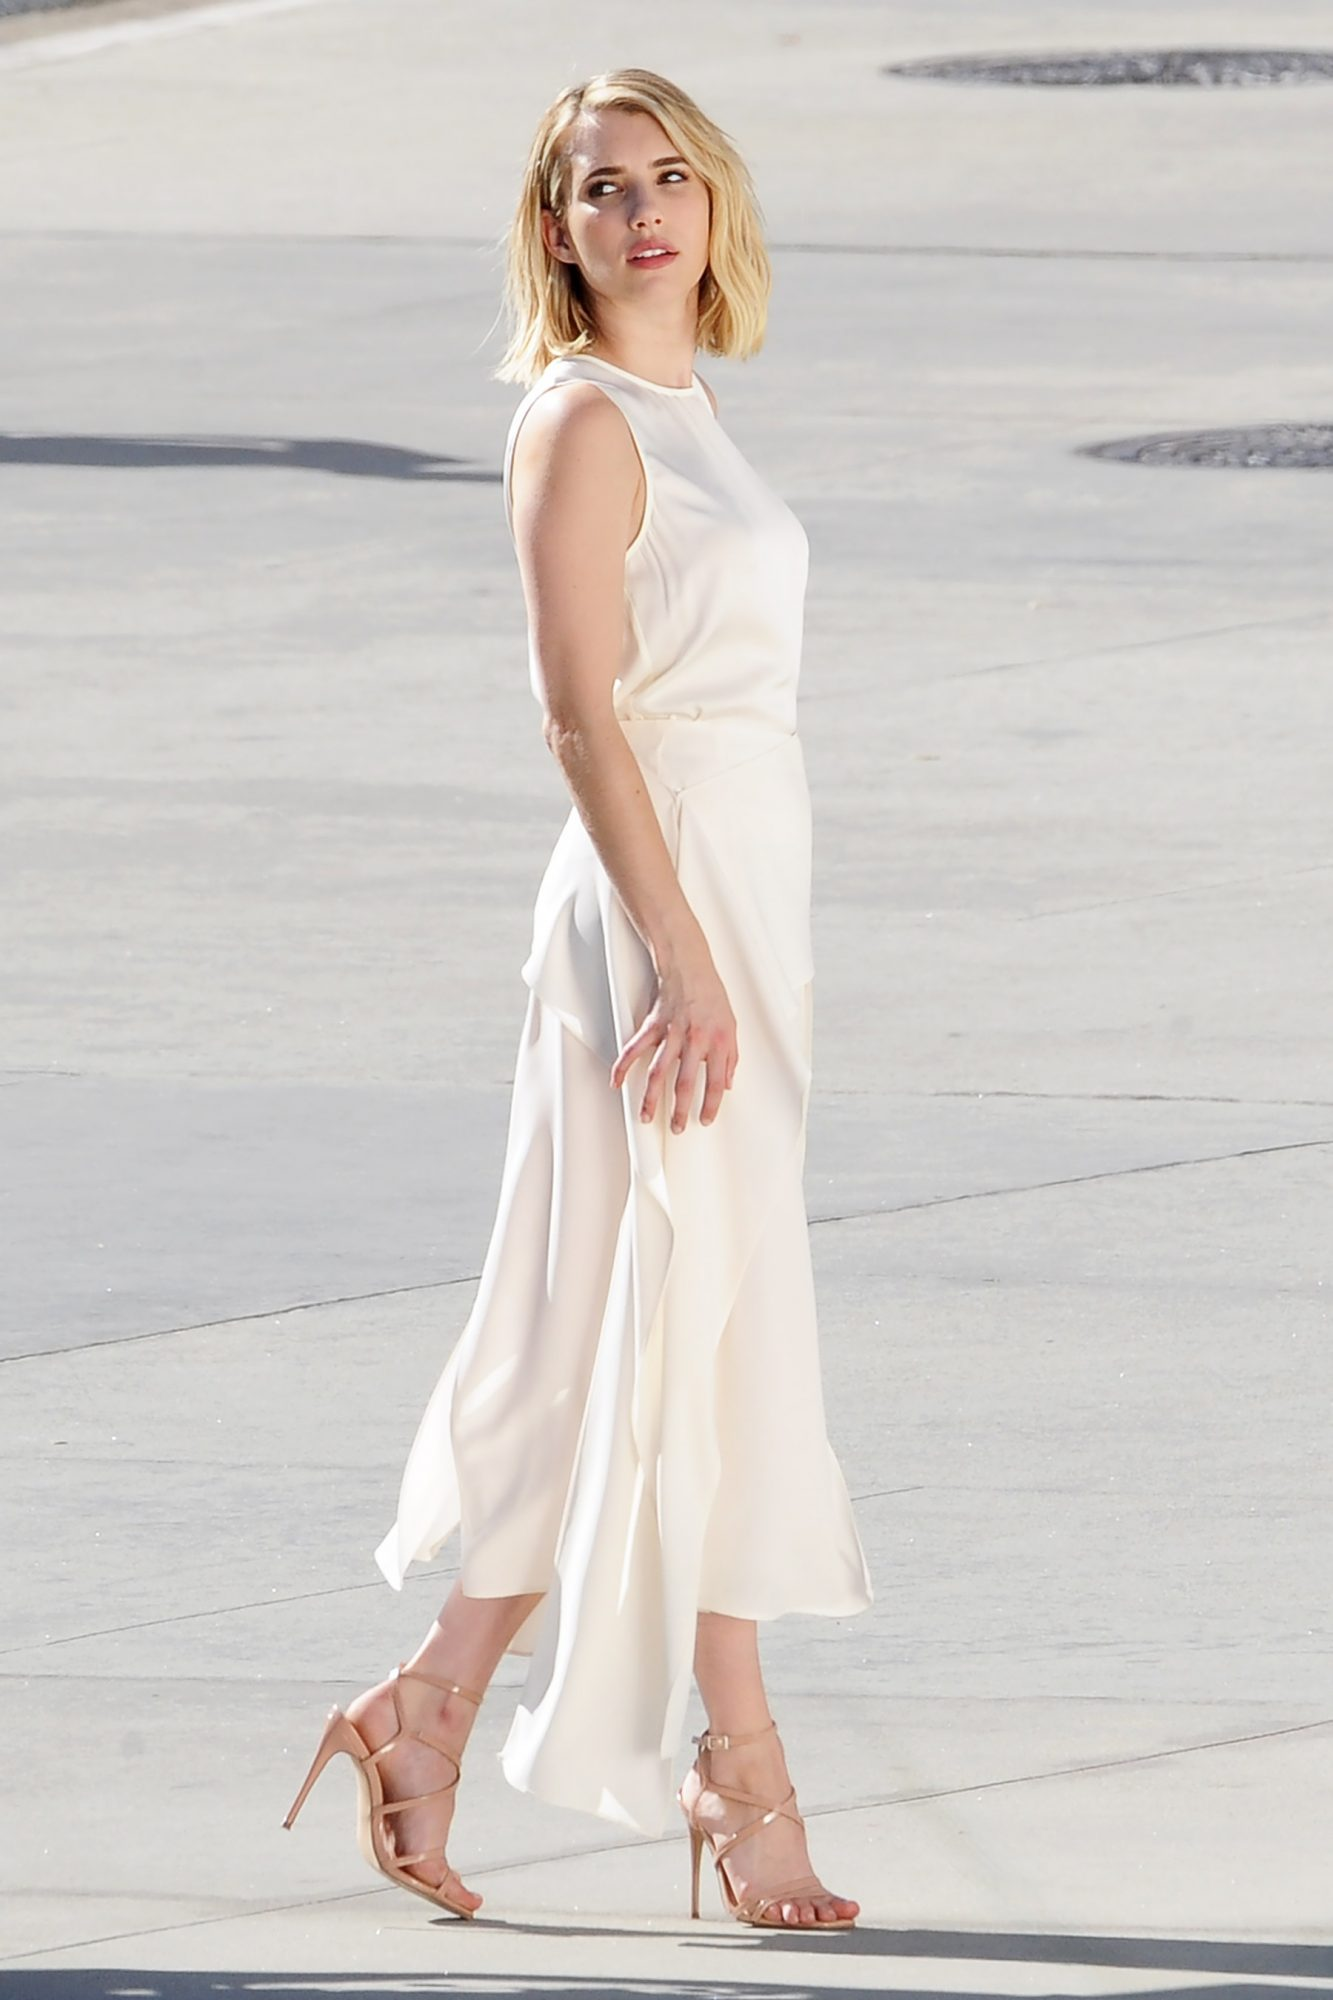 EXCLUSIVE: Emma Roberts is Spotted During a Photo Shoot in Los Angeles